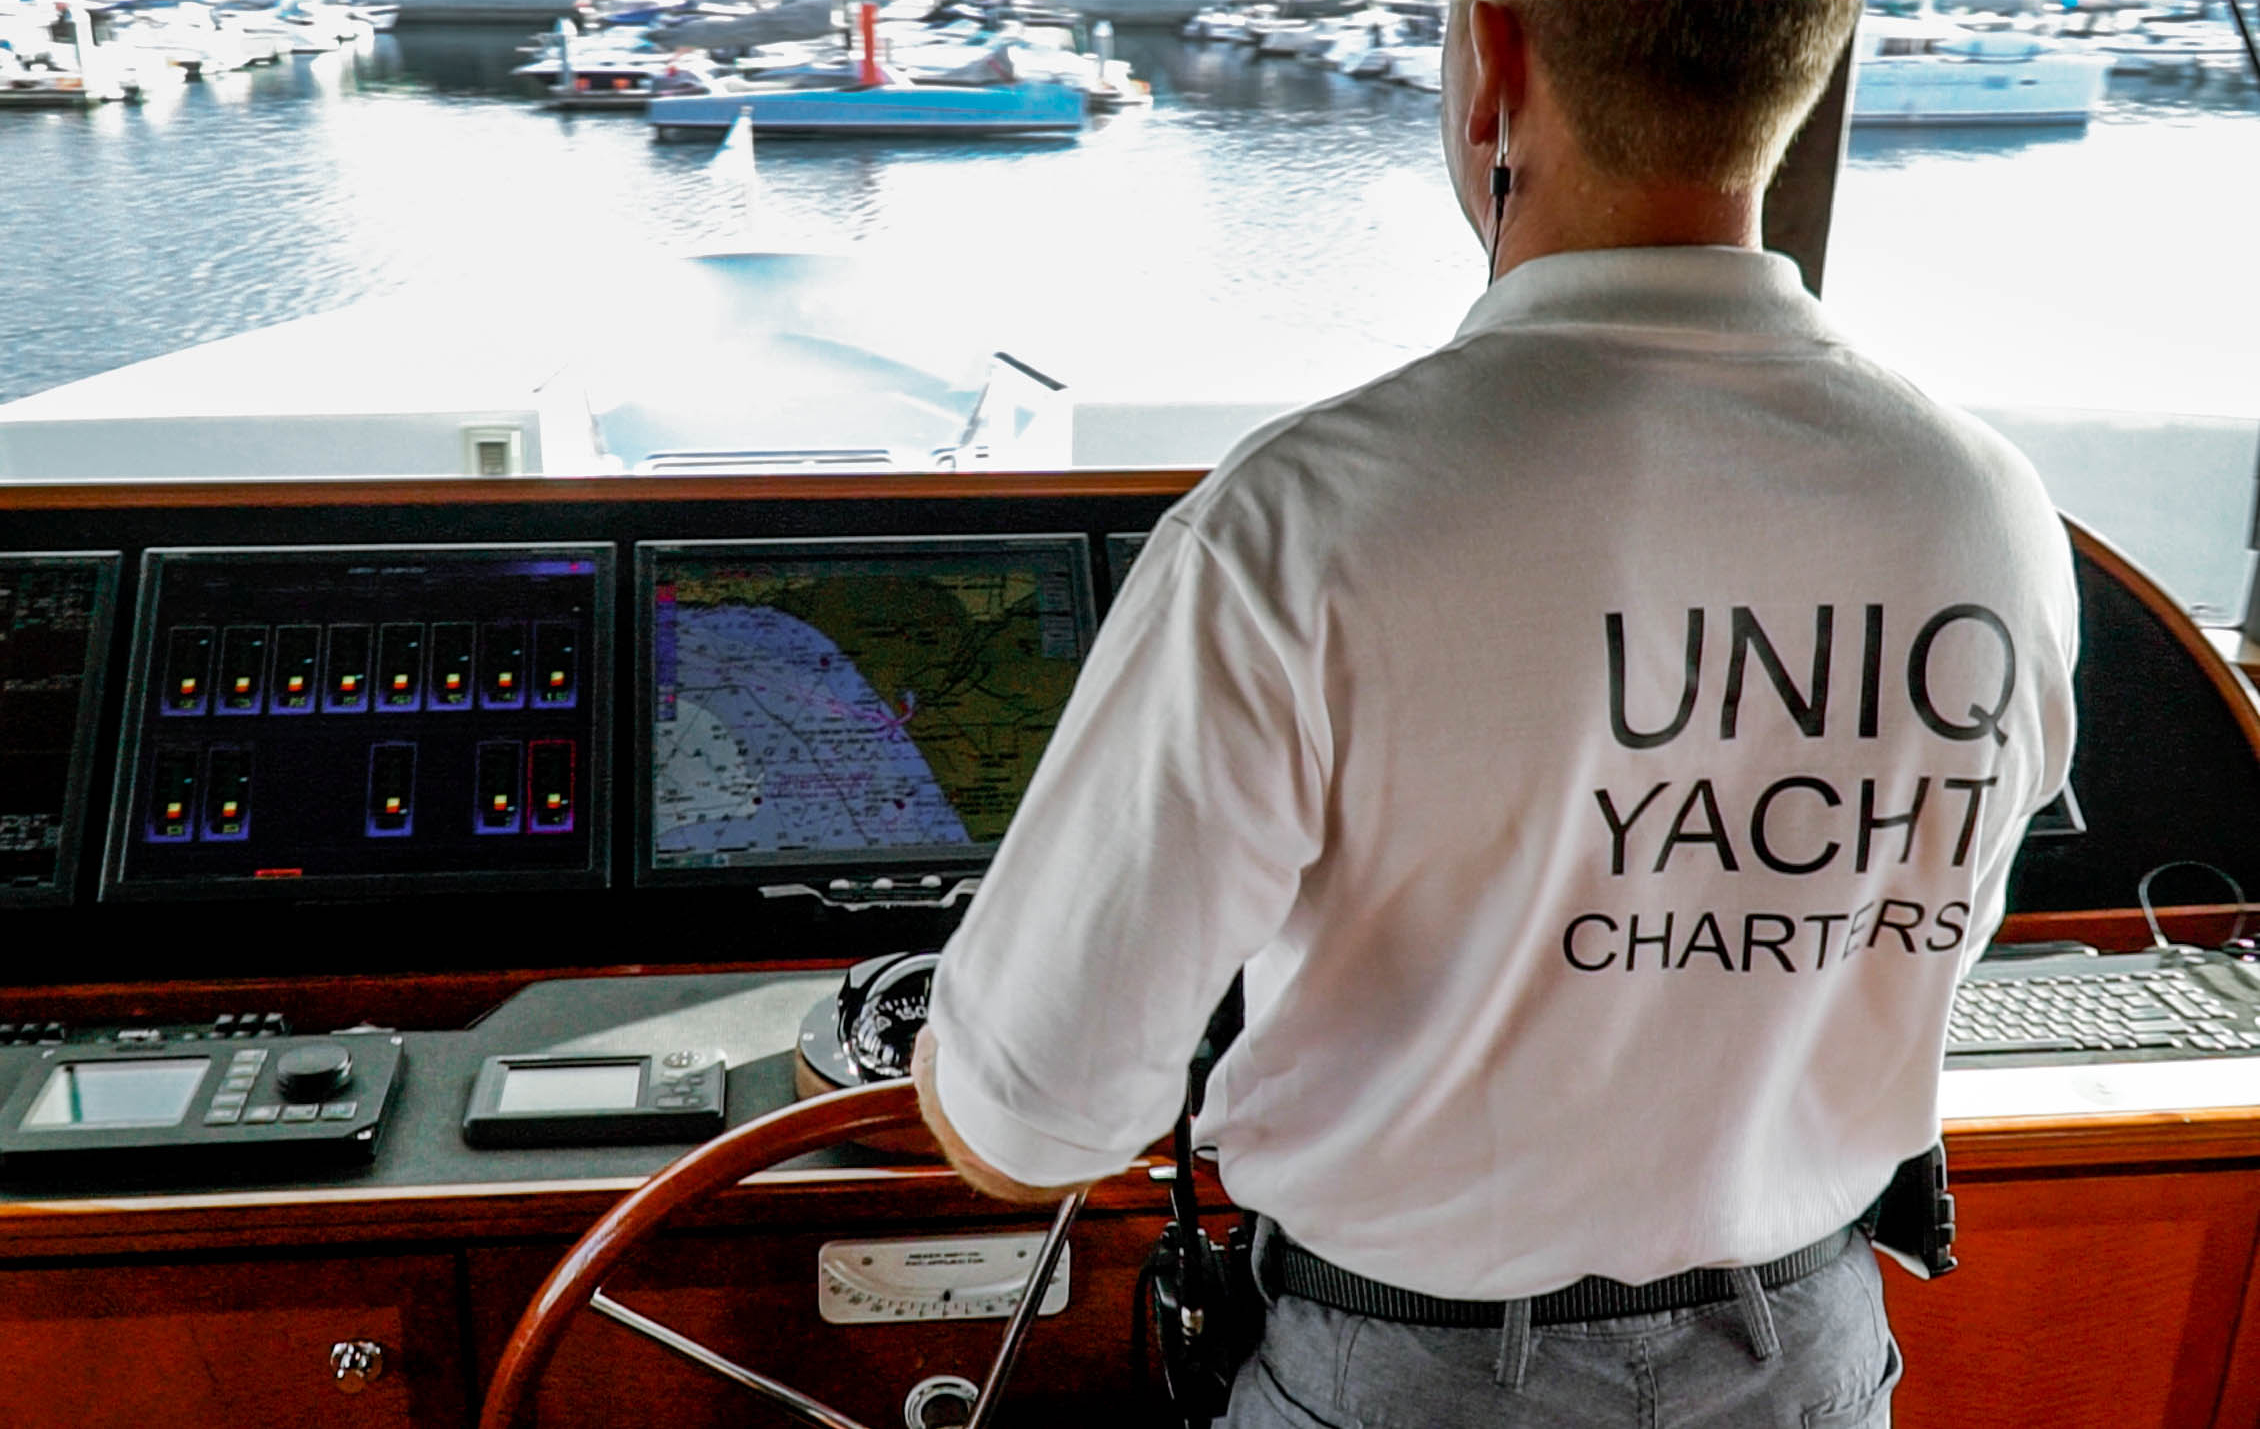 Captain on 143 UNIQ Super Yacht Los Angeles Captained Yacht Charters Luxury Boat Rental Marina Del Rey CA db970468